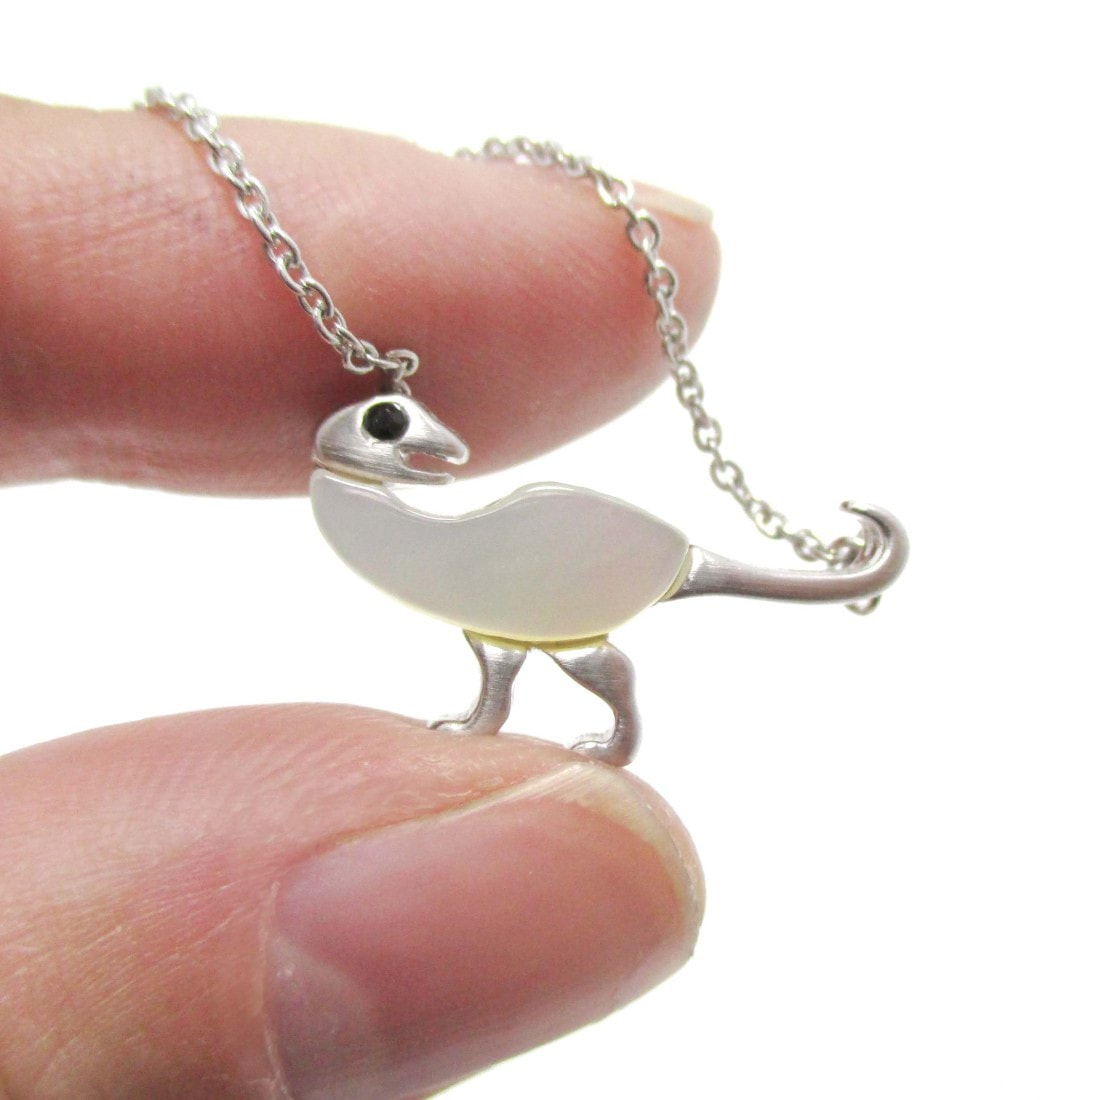 Ornithomimus Dinosaur Shaped Pendant Necklace in Silver